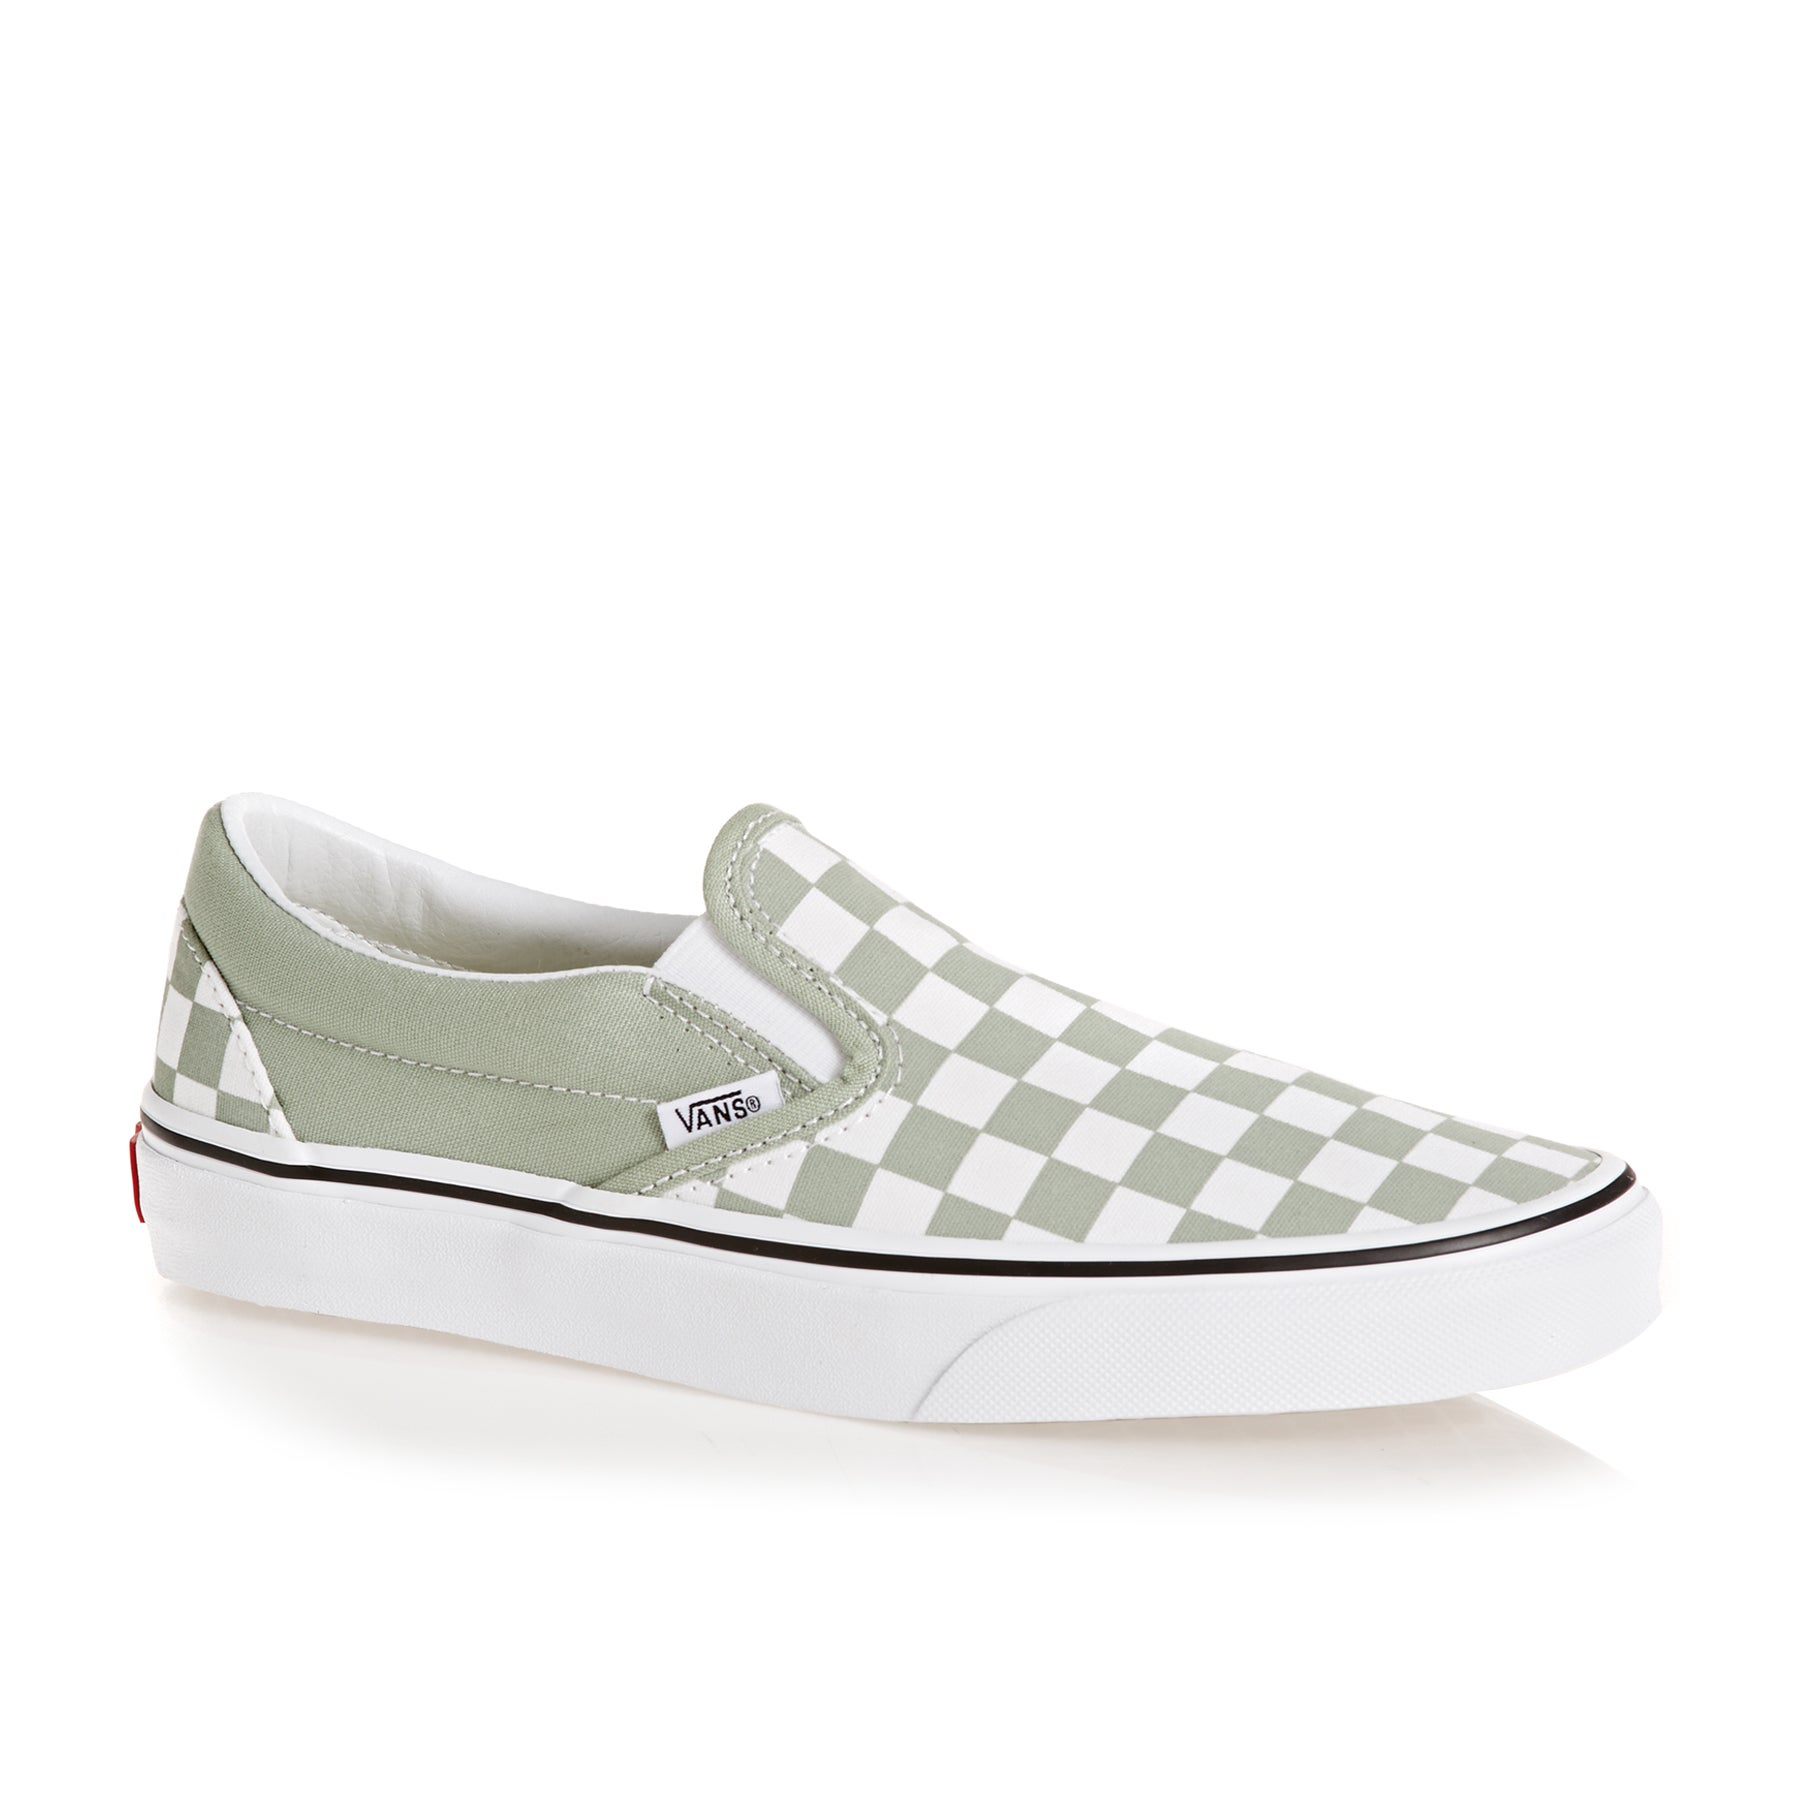 Classic Vans Slip PSko From Surfdome Available Authentic CxthQdrs